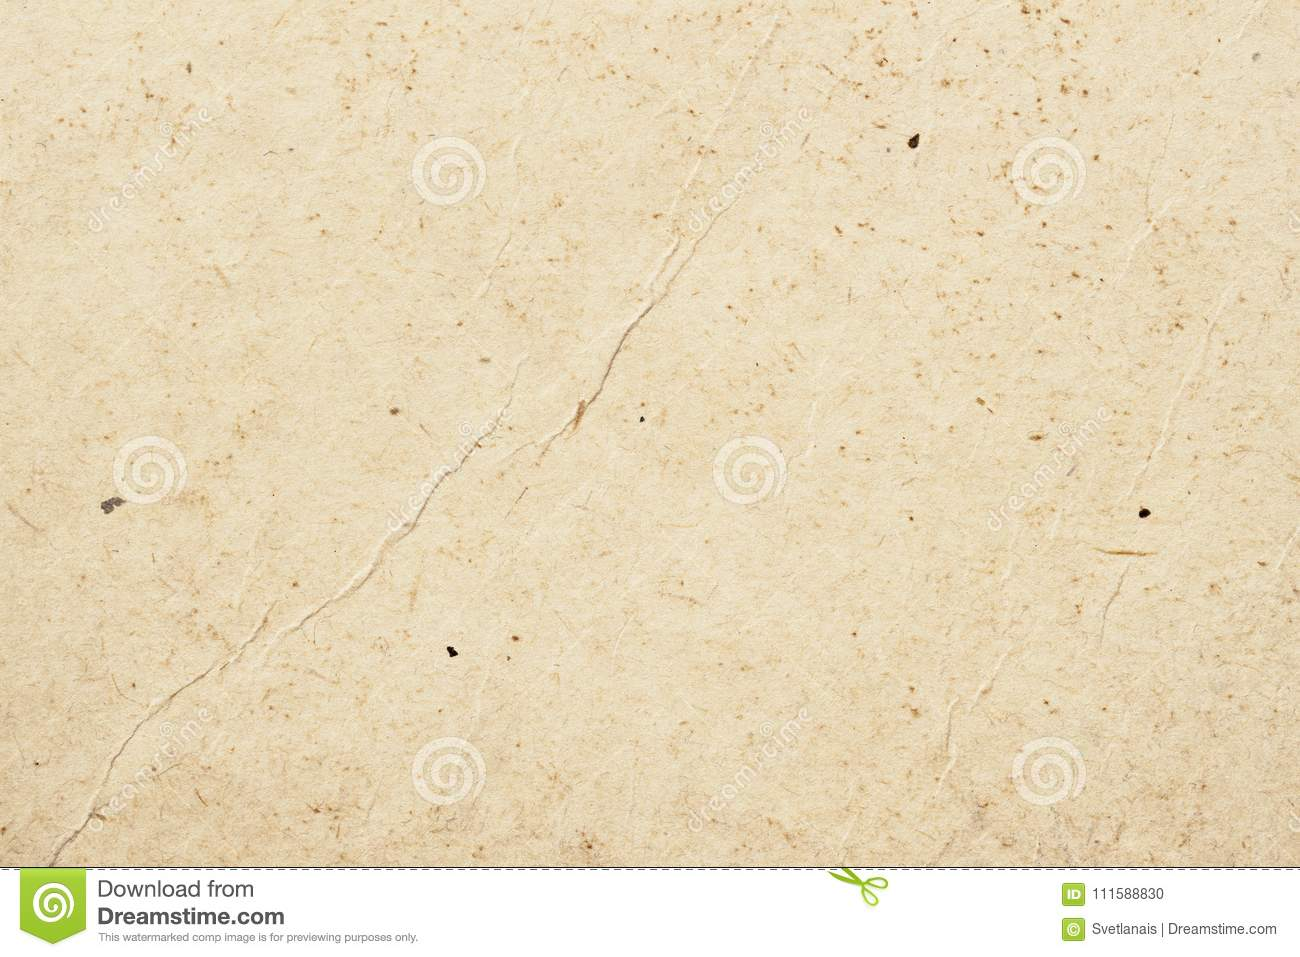 Texture of old organic light cream paper with wrinkles, background for design with copy space text or image. Recyclable